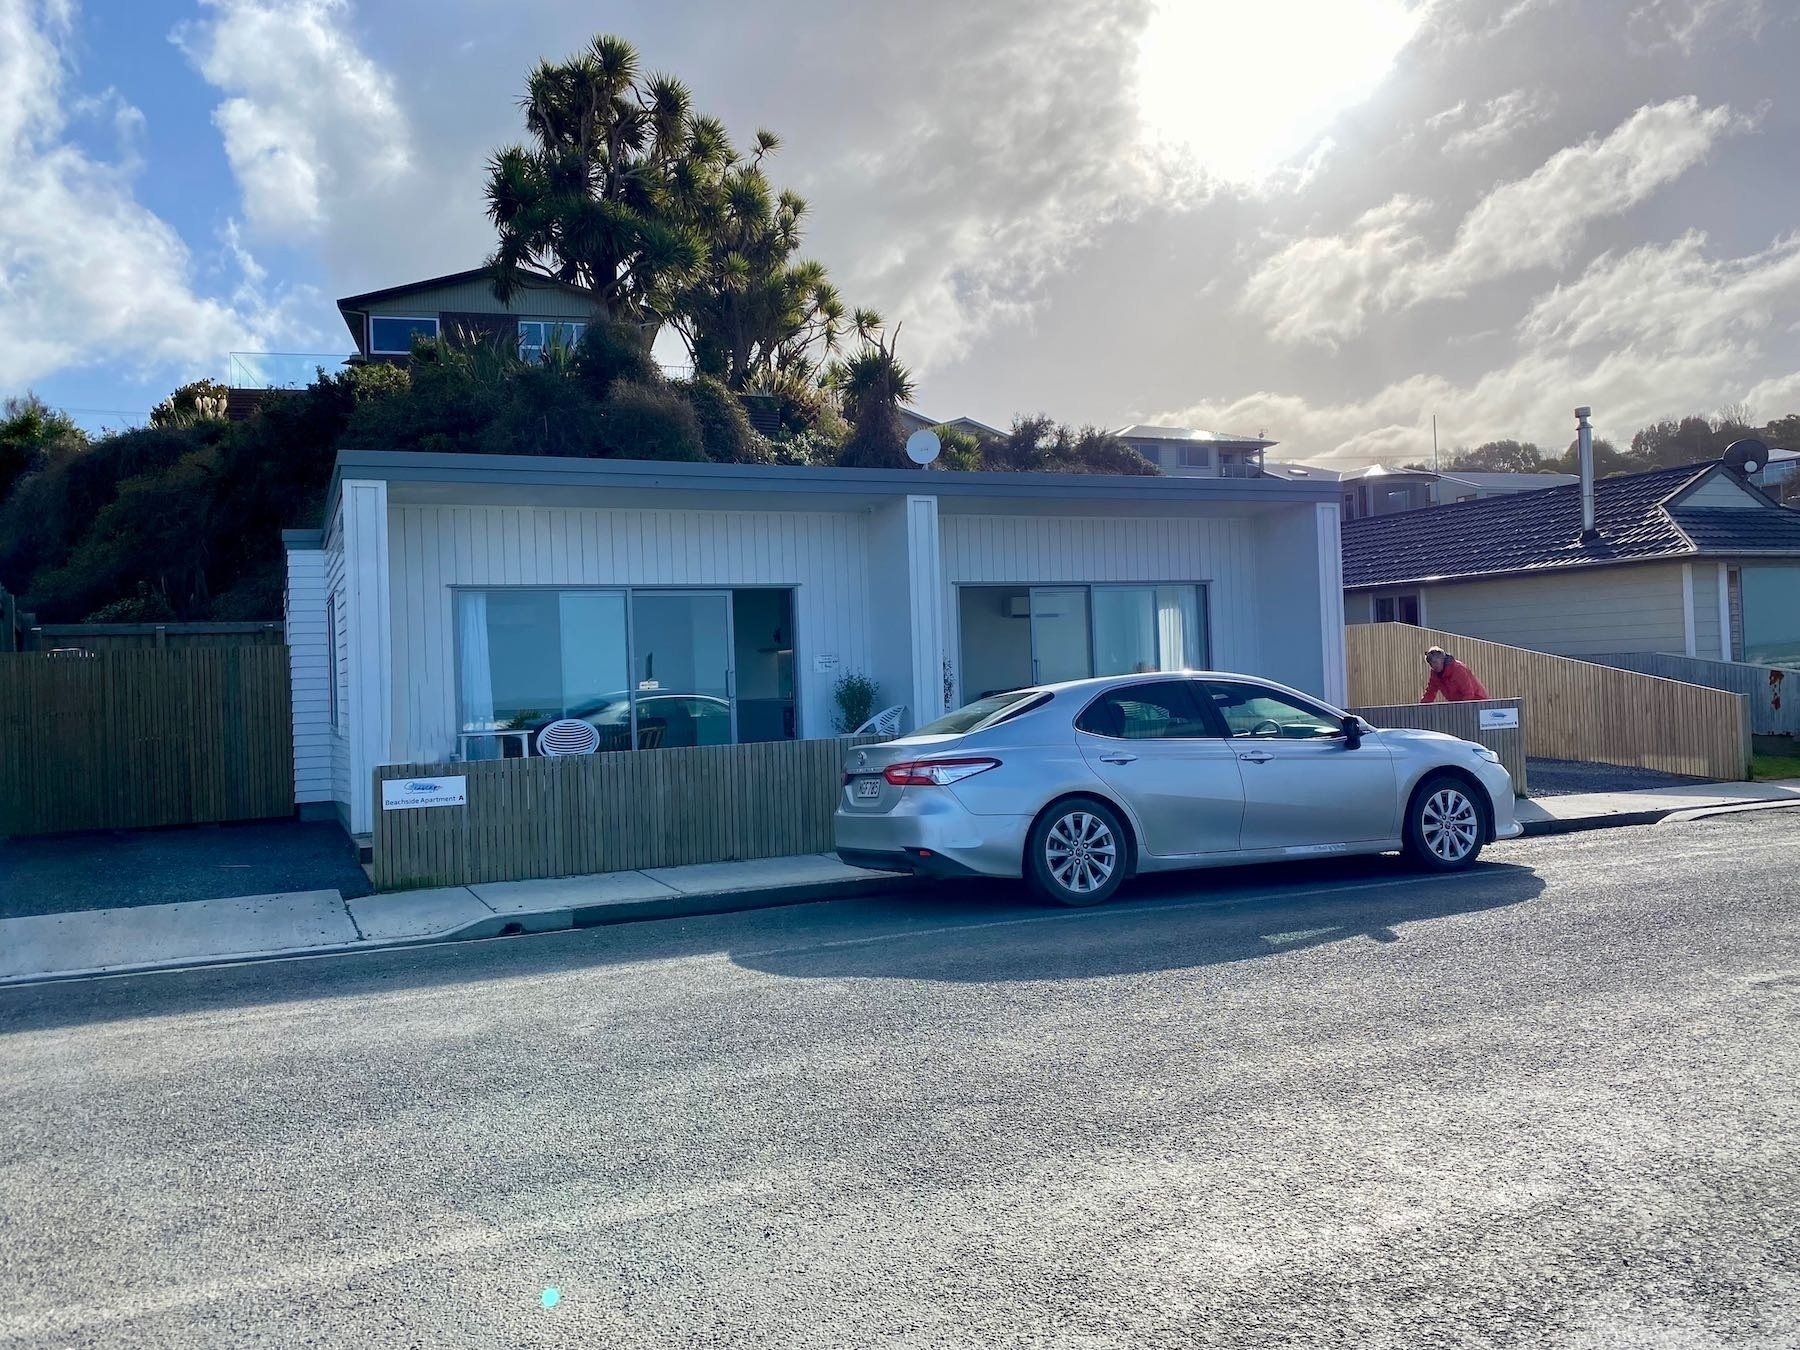 Seascape Motel — 2 units with rental car in front.